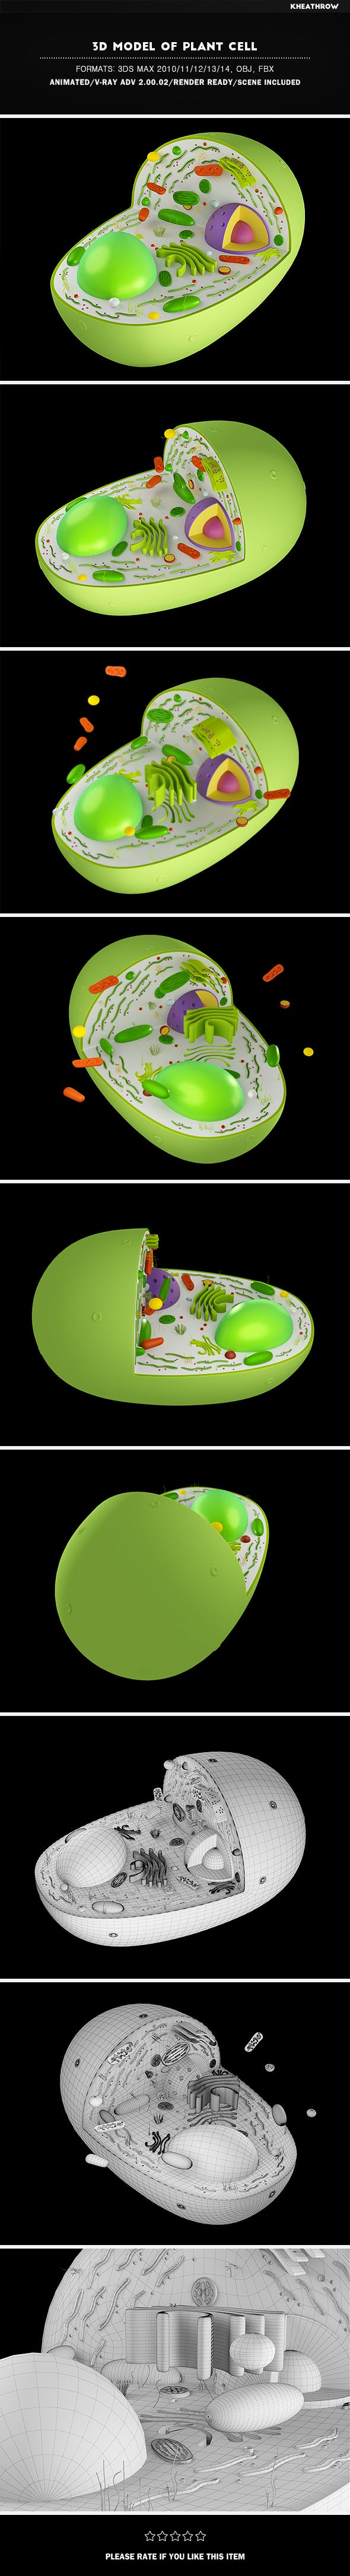 3D Model of Plant Cell - 3DOcean Item for Sale